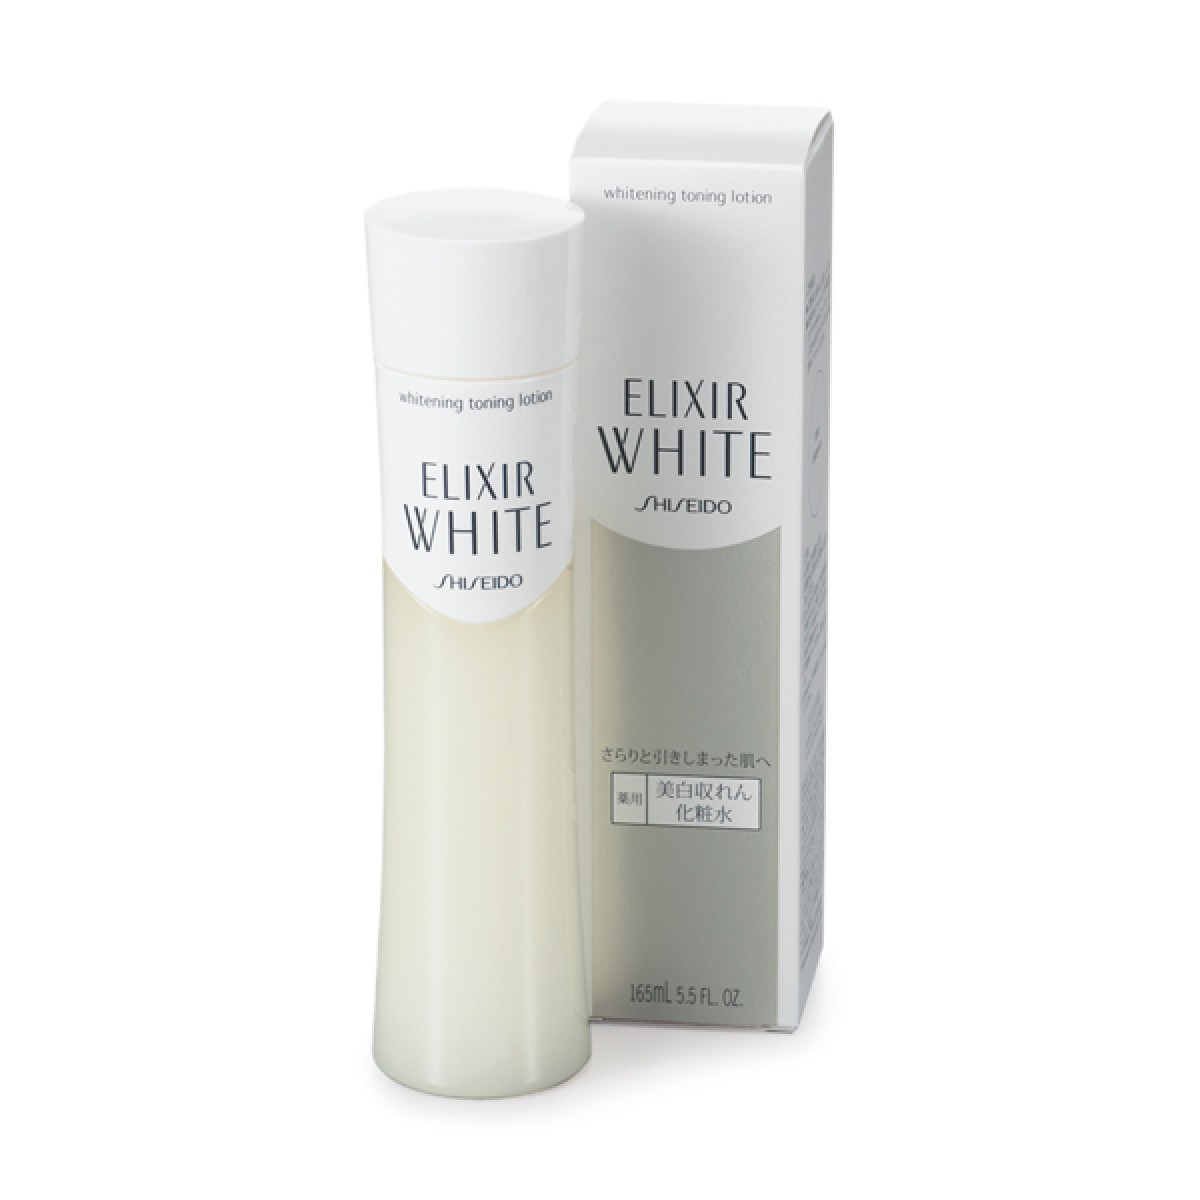 Dưỡng Ngày Elixir White Whitening Clear Emulision